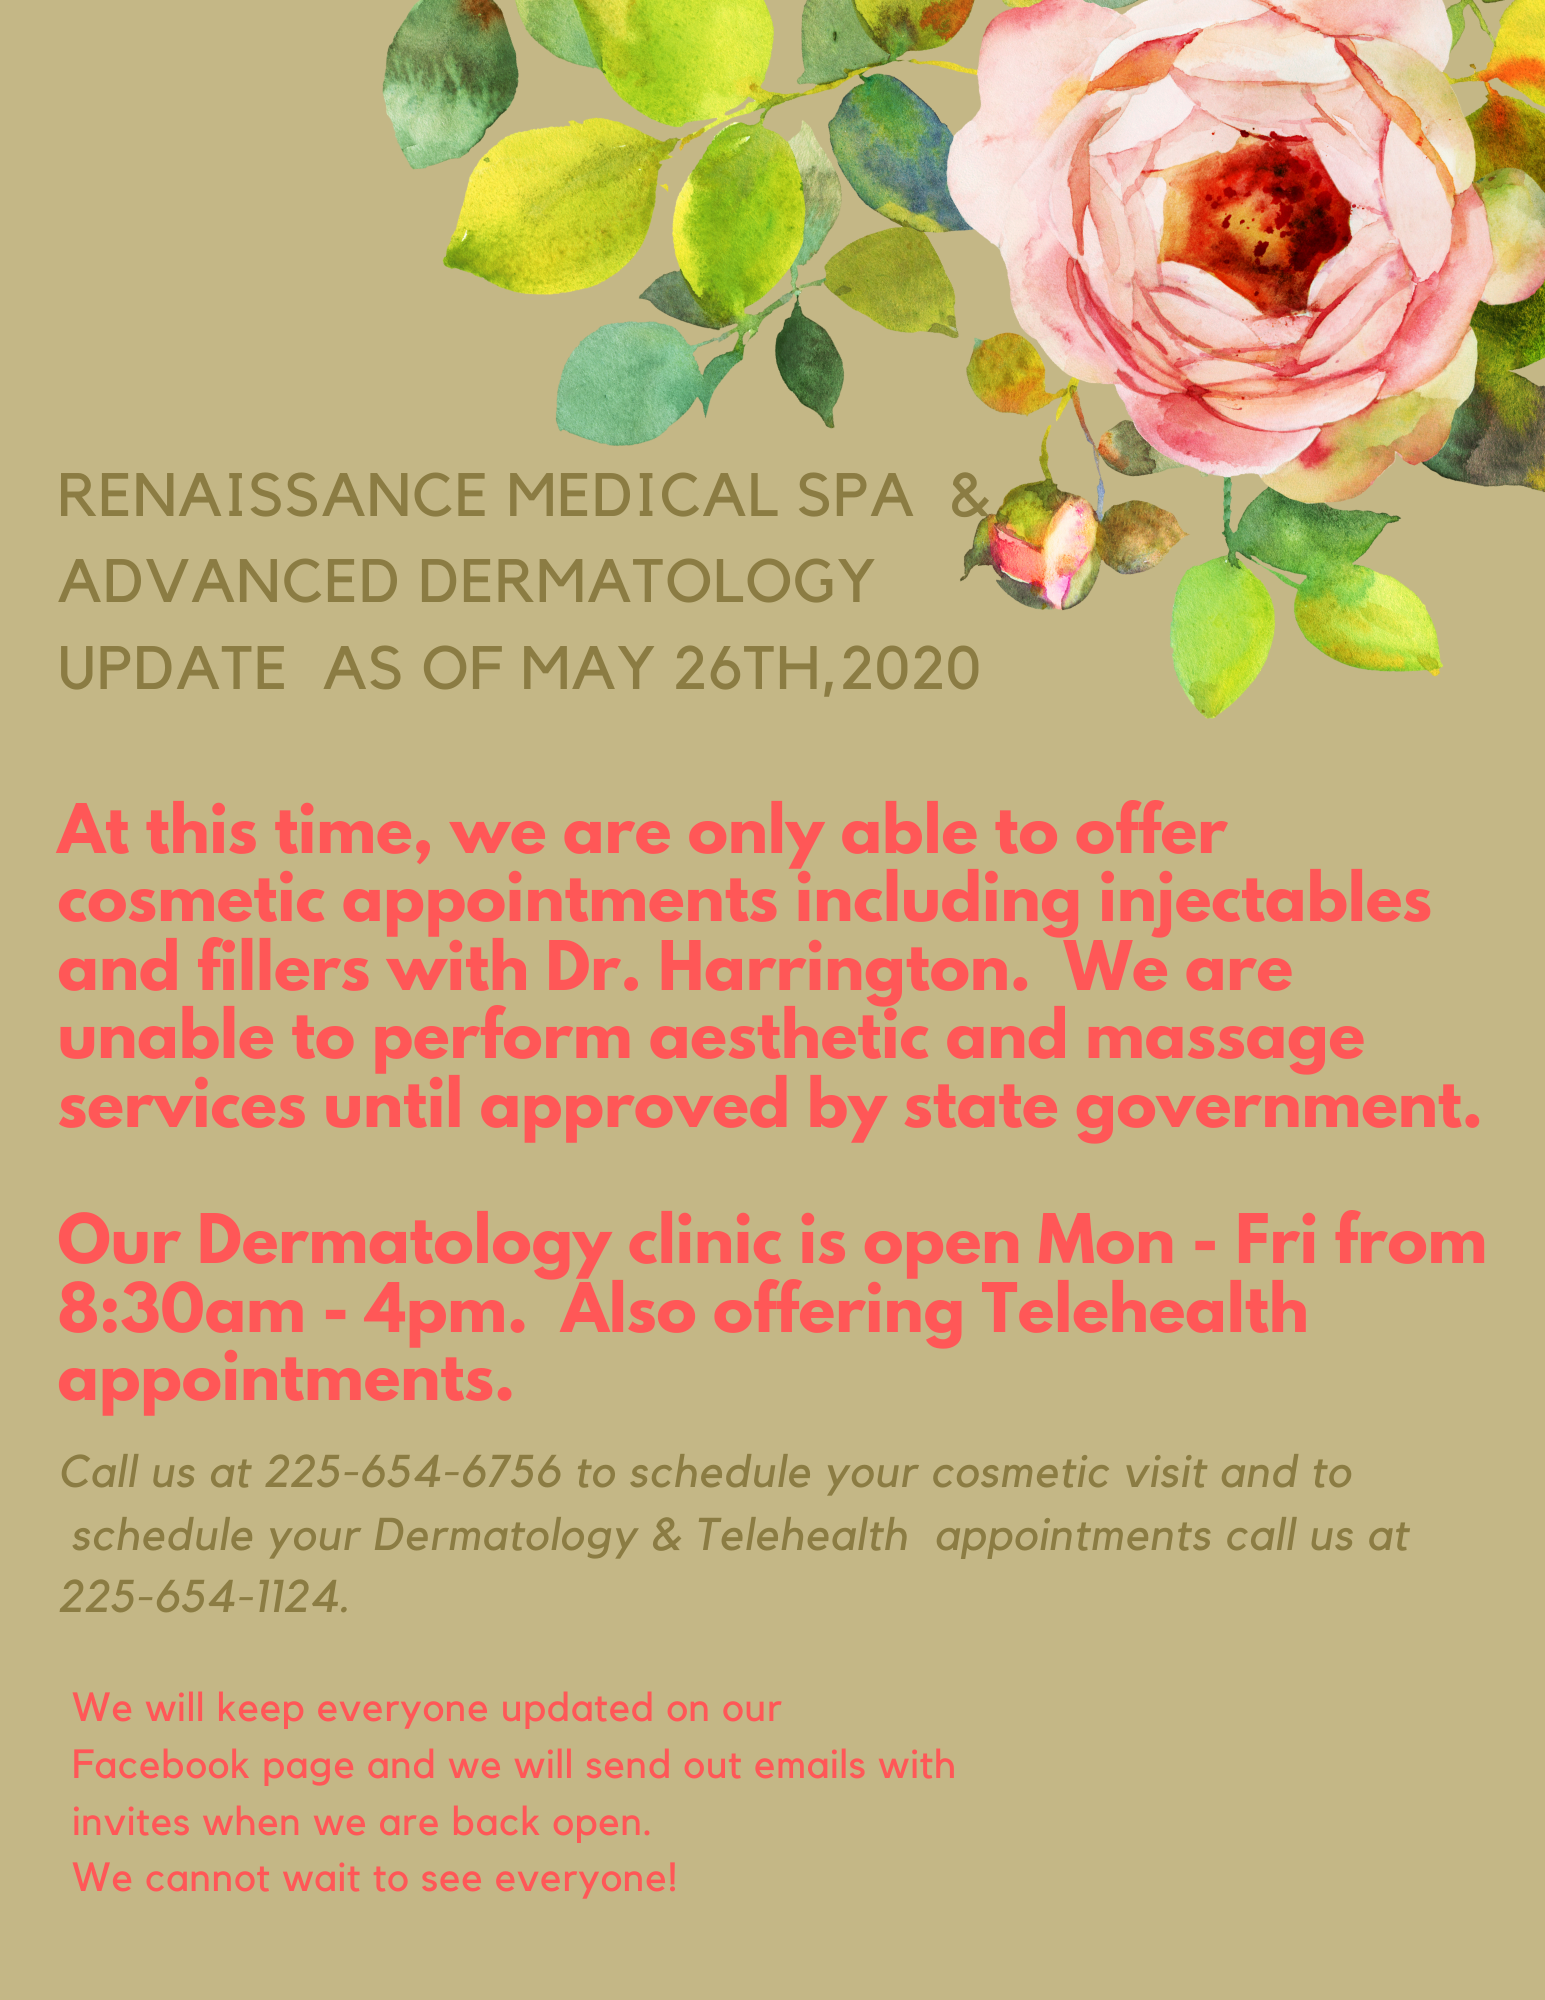 Renaissance Medical SPA update may 26,2020 website